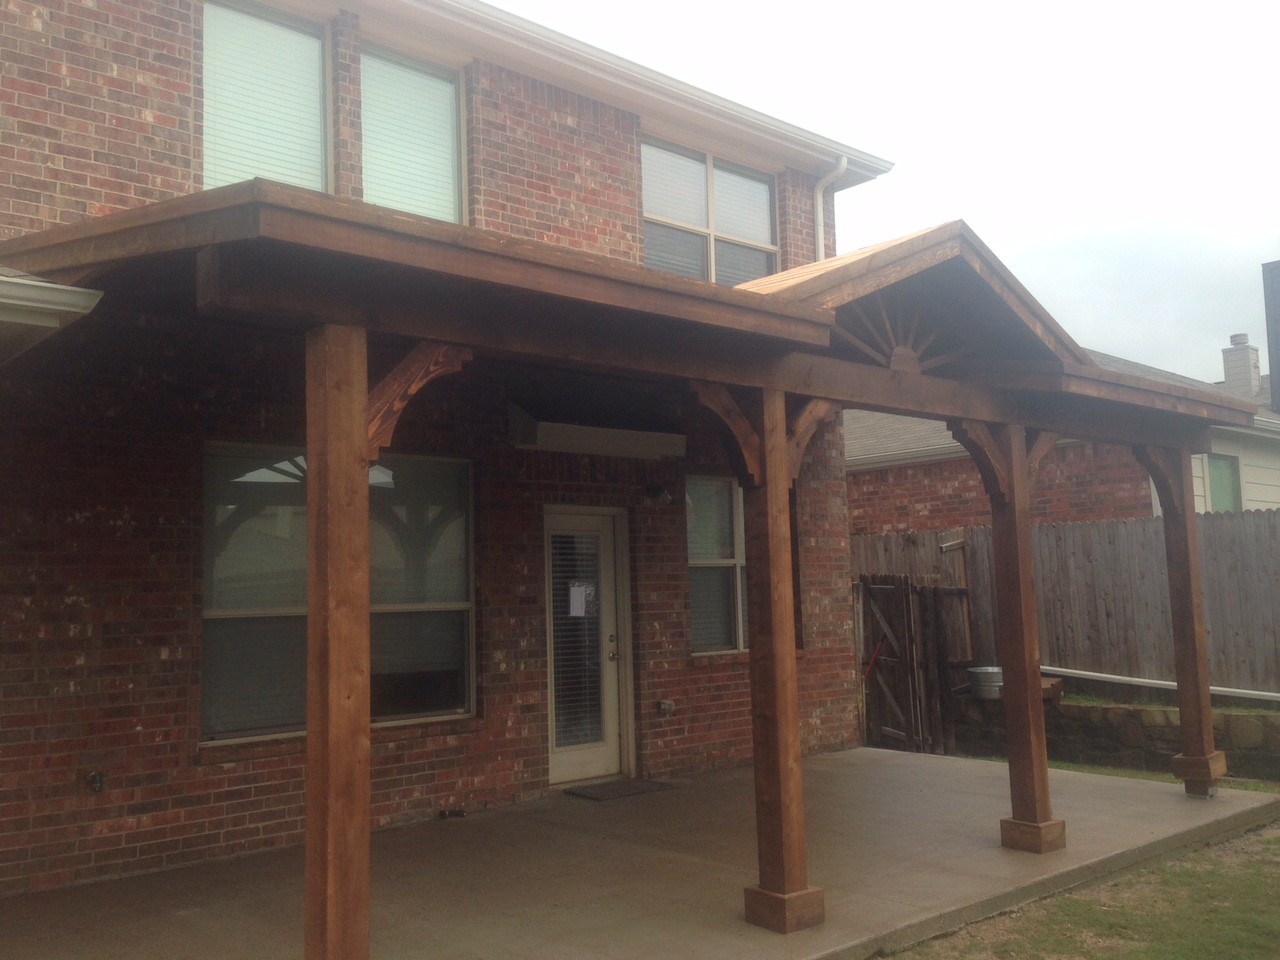 Backyard Patio Cover Outdoor Kitchen and Bathroom In Frisco Texas  Hundt Patio Covers and Decks